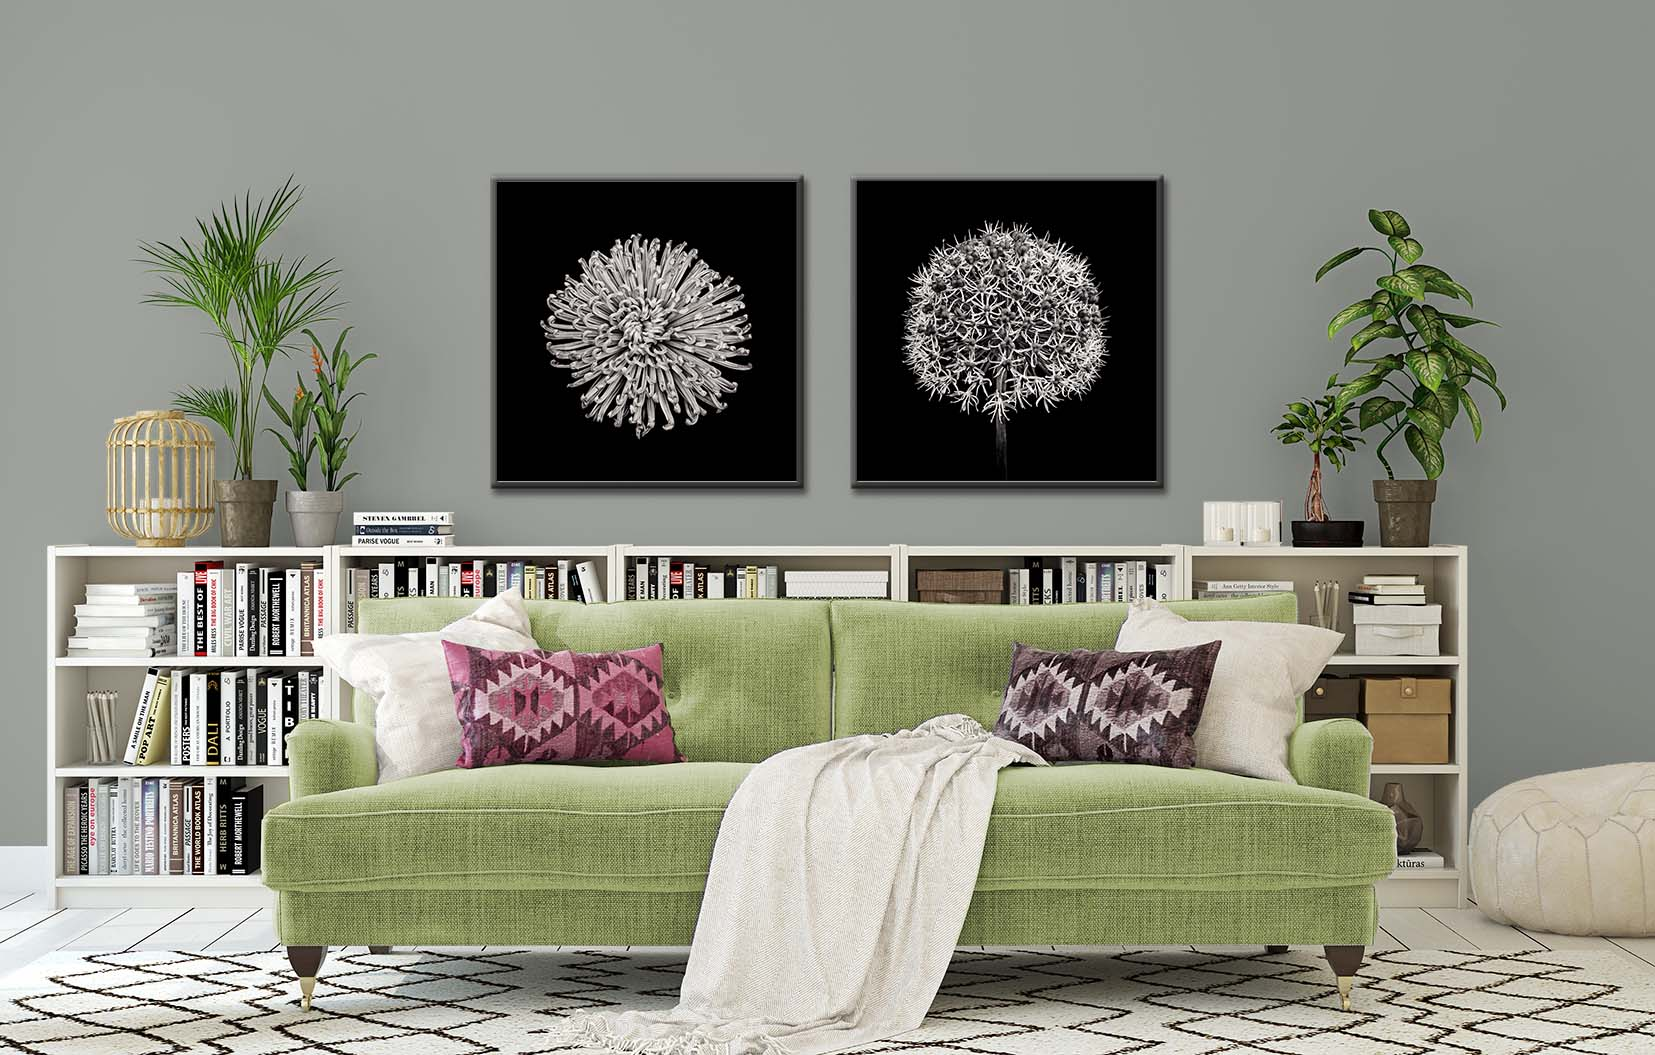 Two black and white floral prints of a crysanthamum and a white empress. Fine art botanic prints by Paul Coghlin FBIPP.